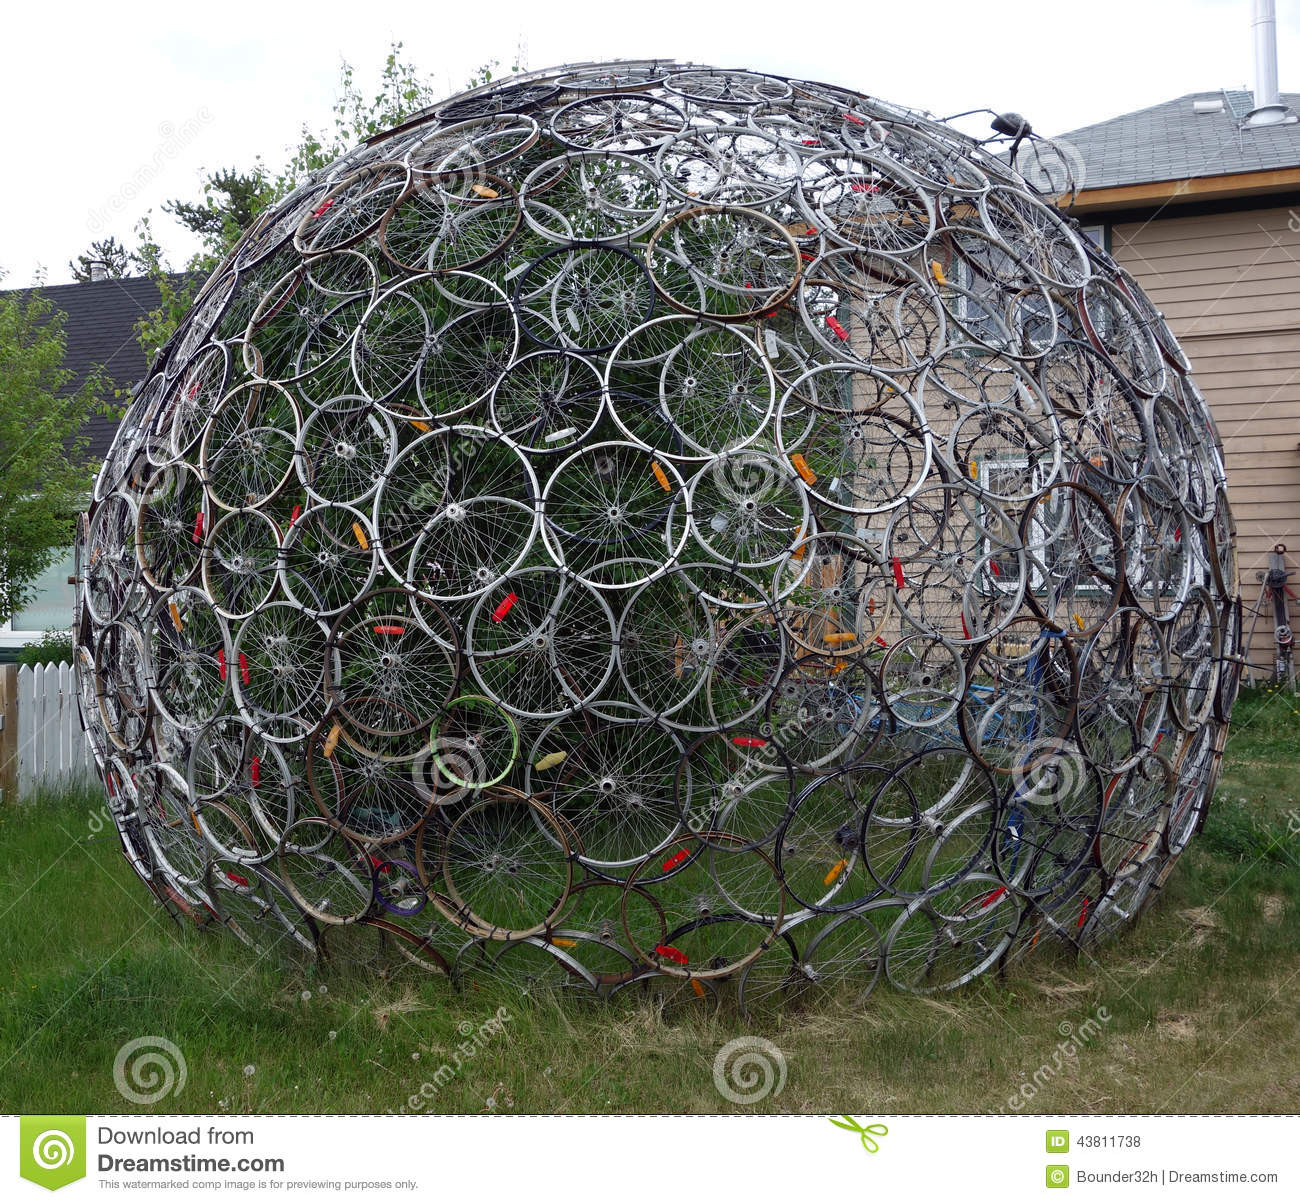 used bicycle tires forming a globe like sculpture stock photo image of bike grass 43811738. Black Bedroom Furniture Sets. Home Design Ideas